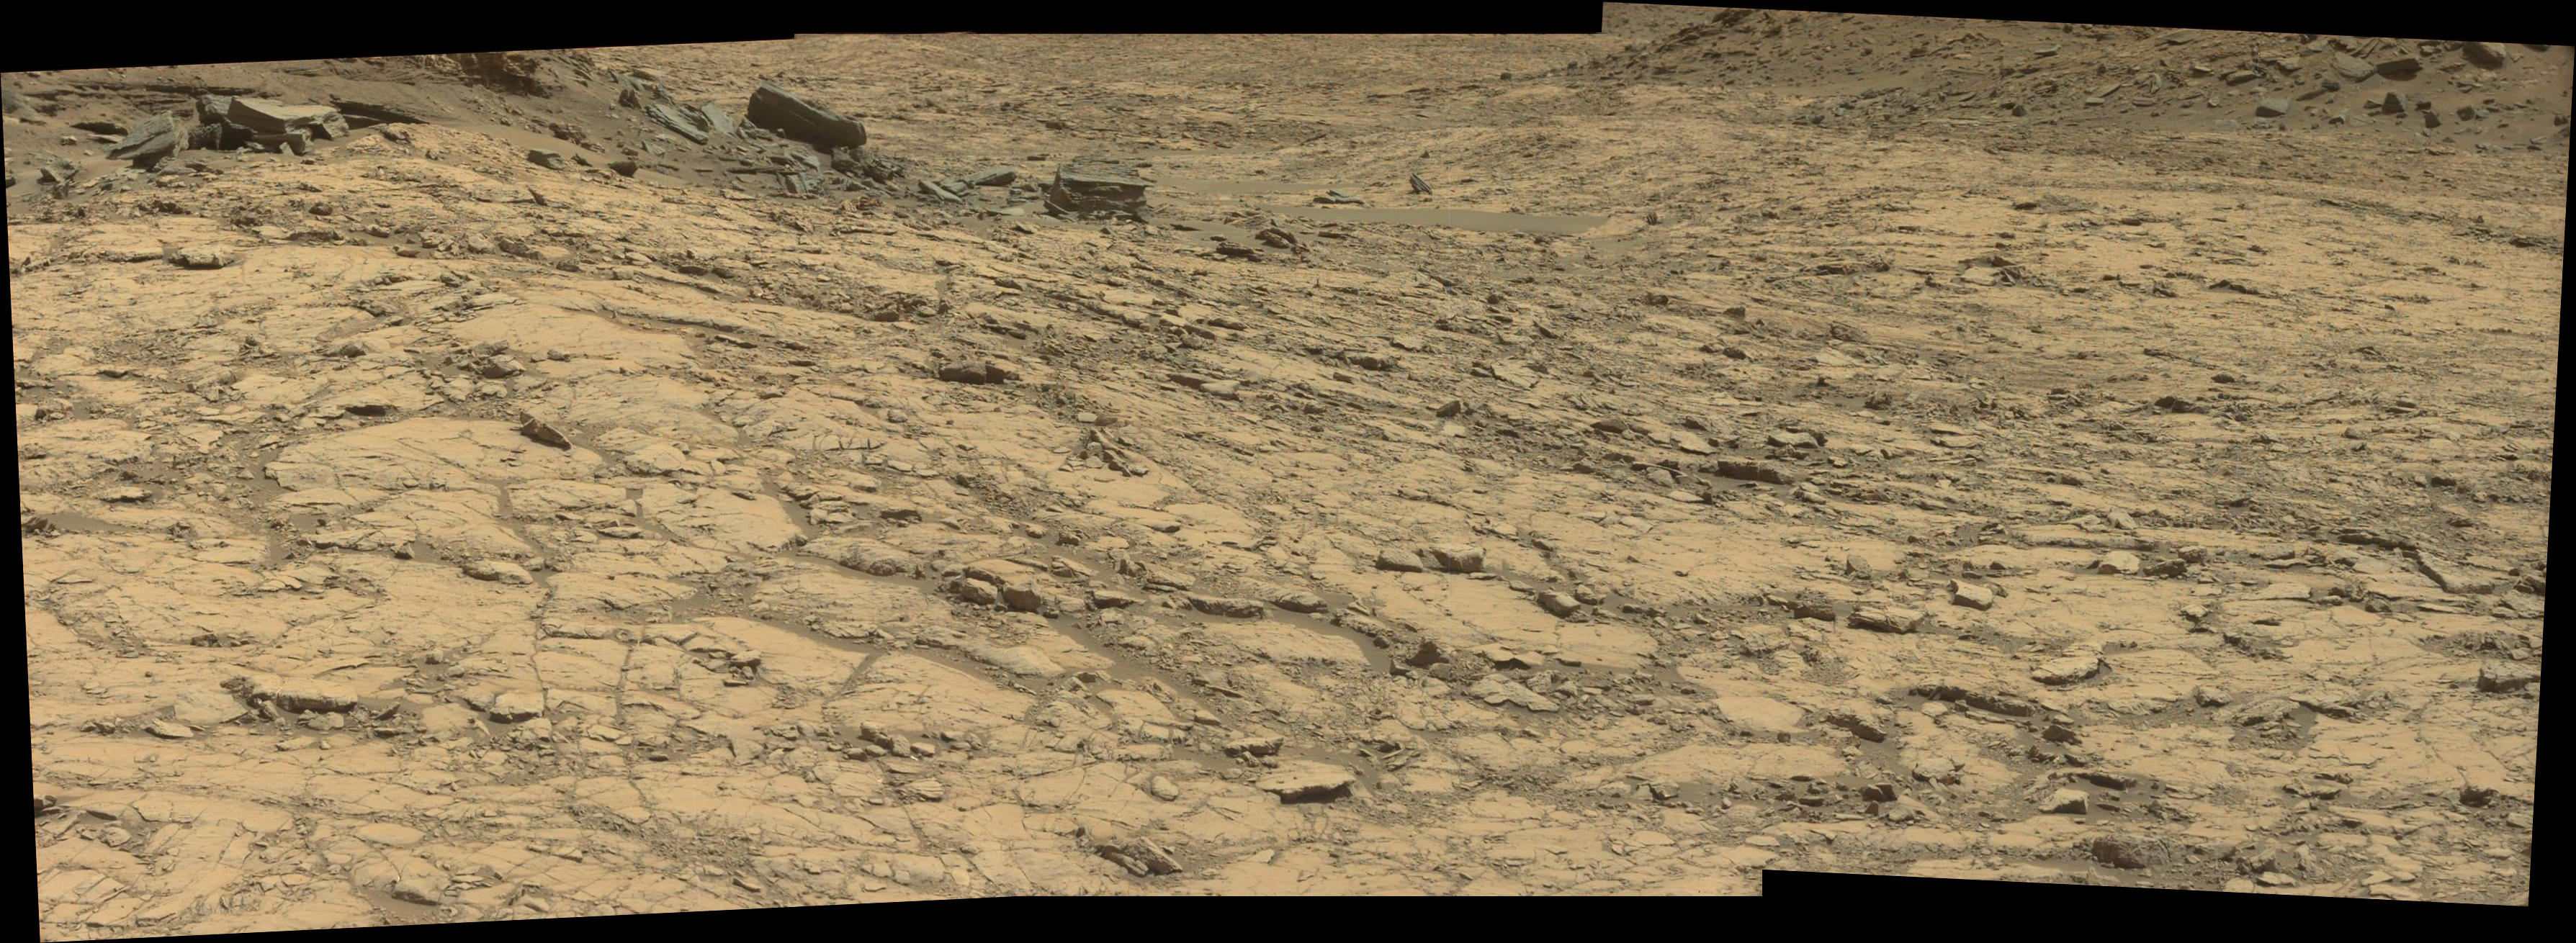 panoramic curiosity rover view 1 - sol 1428 - was life on mars